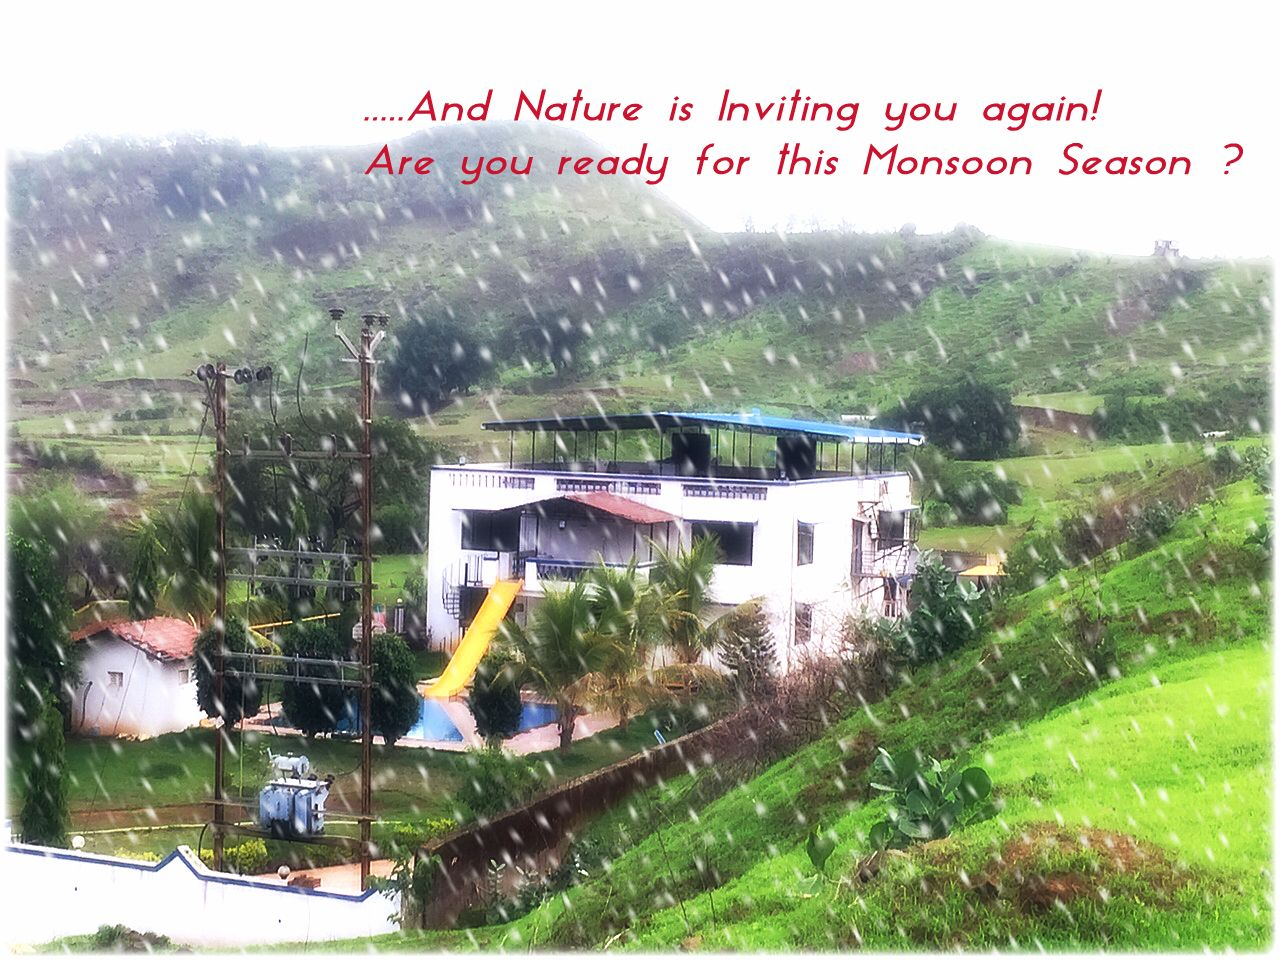 And Nature is Inviting you again! Are you ready for this